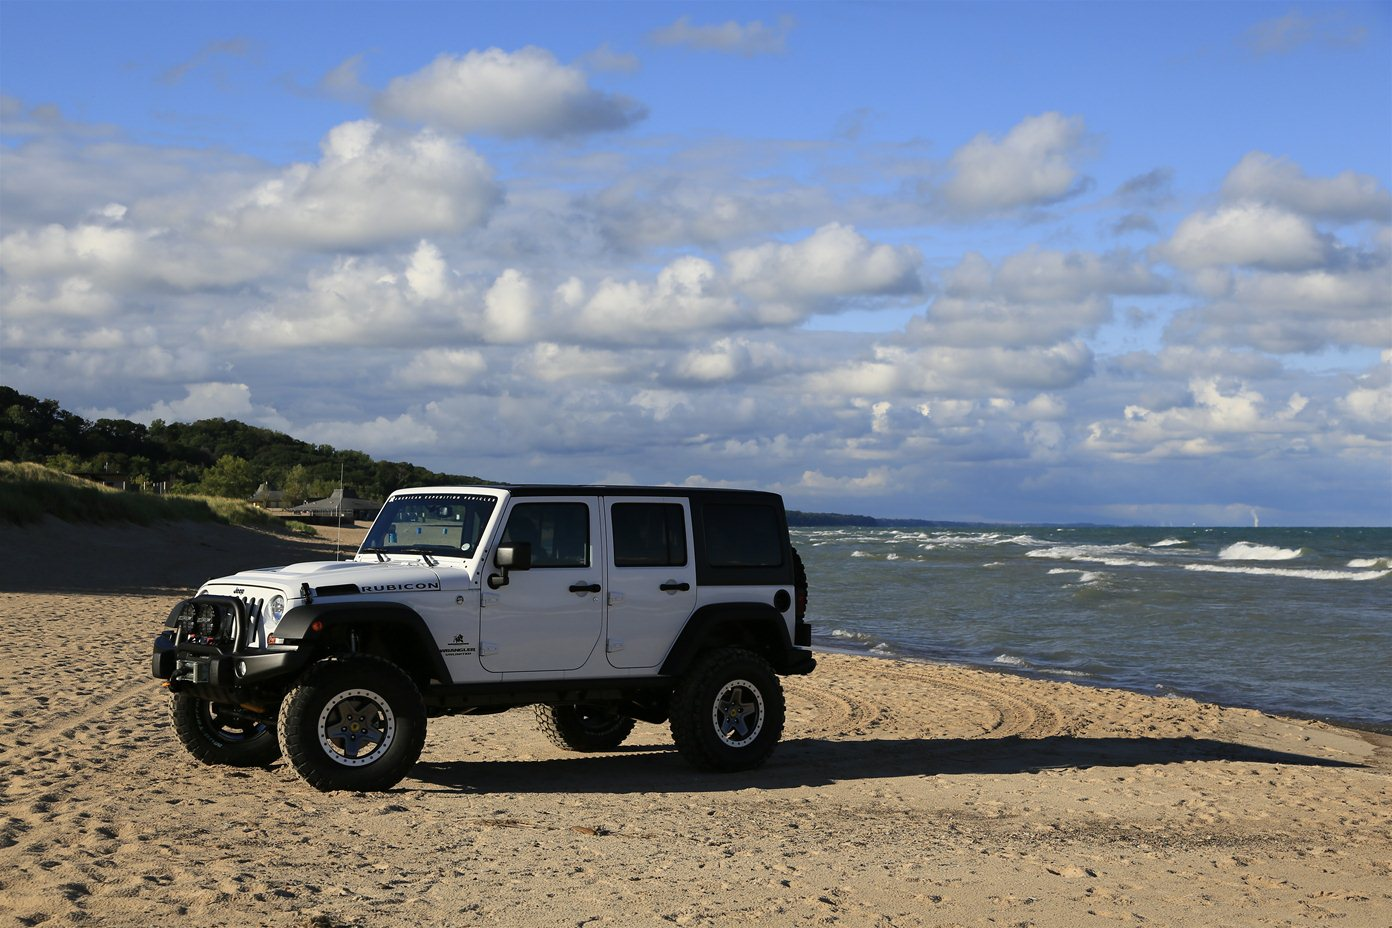 Jeep Actioncamper Fully Equipped Expedition Ready Slide In Wrangler Camper By Thaler Eric